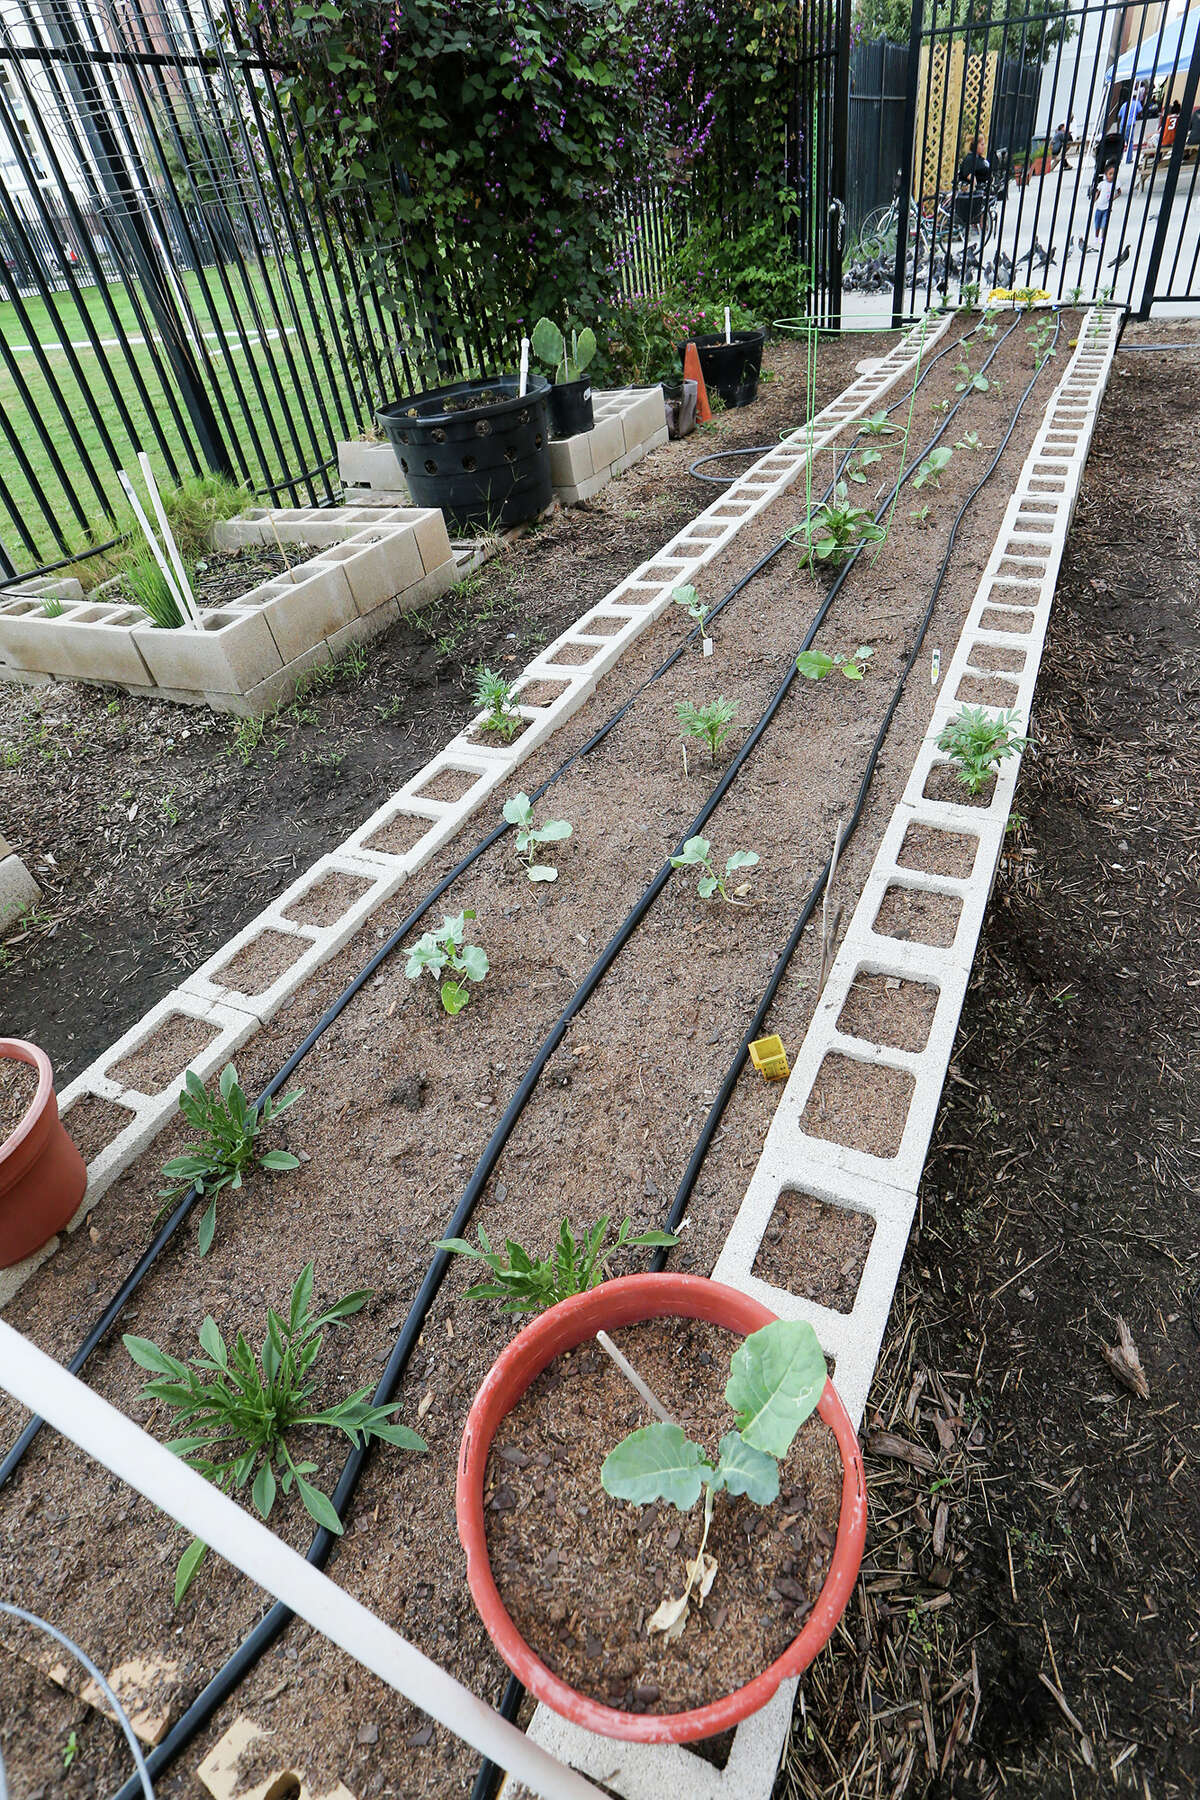 A recently planted row of cauliflower, broccoli, bell pepper and cabbage is getting established in a raised bed in the vegetable garden at Haven for Hope.